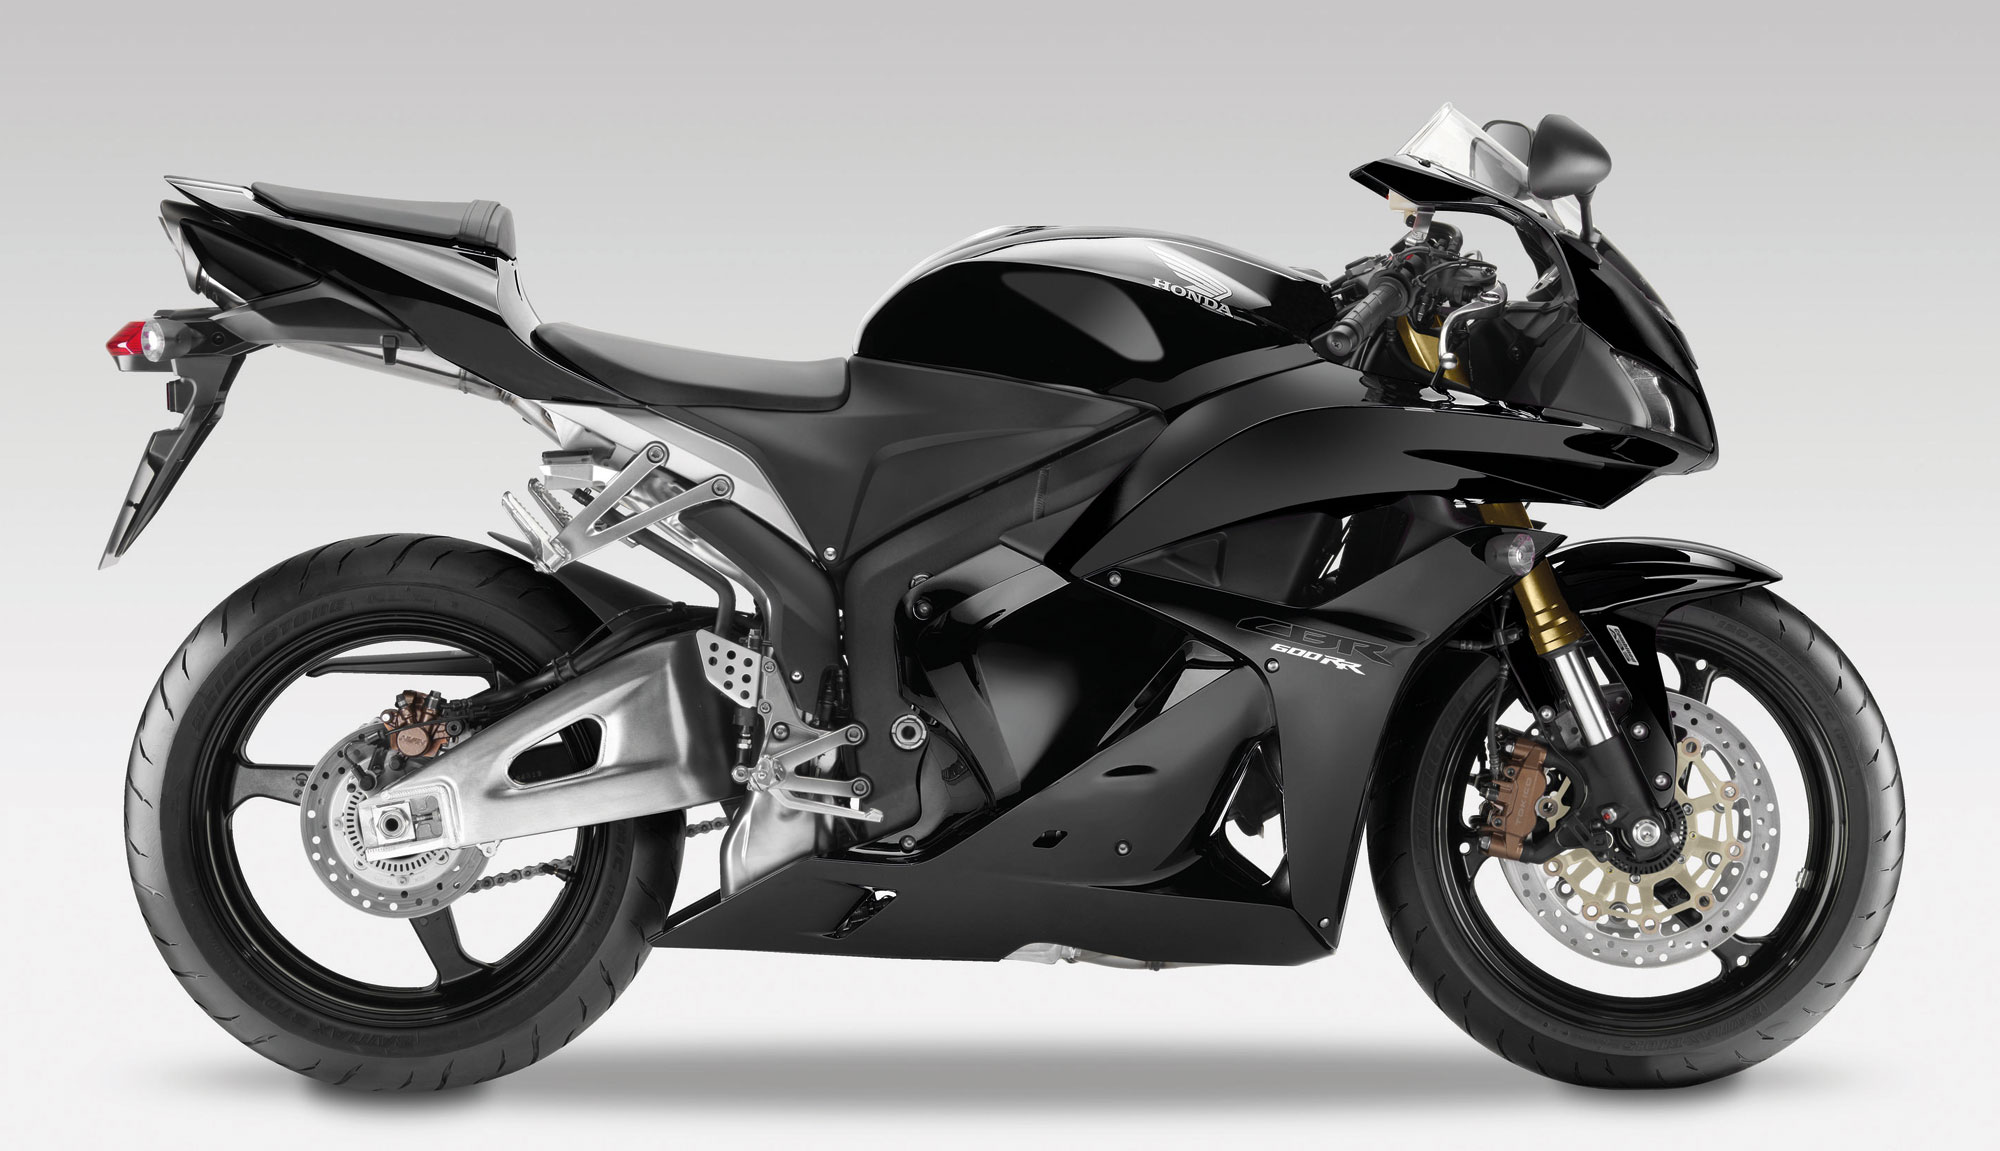 2012 Honda Cbr600rr F Wallpaper 2000x1151 90760